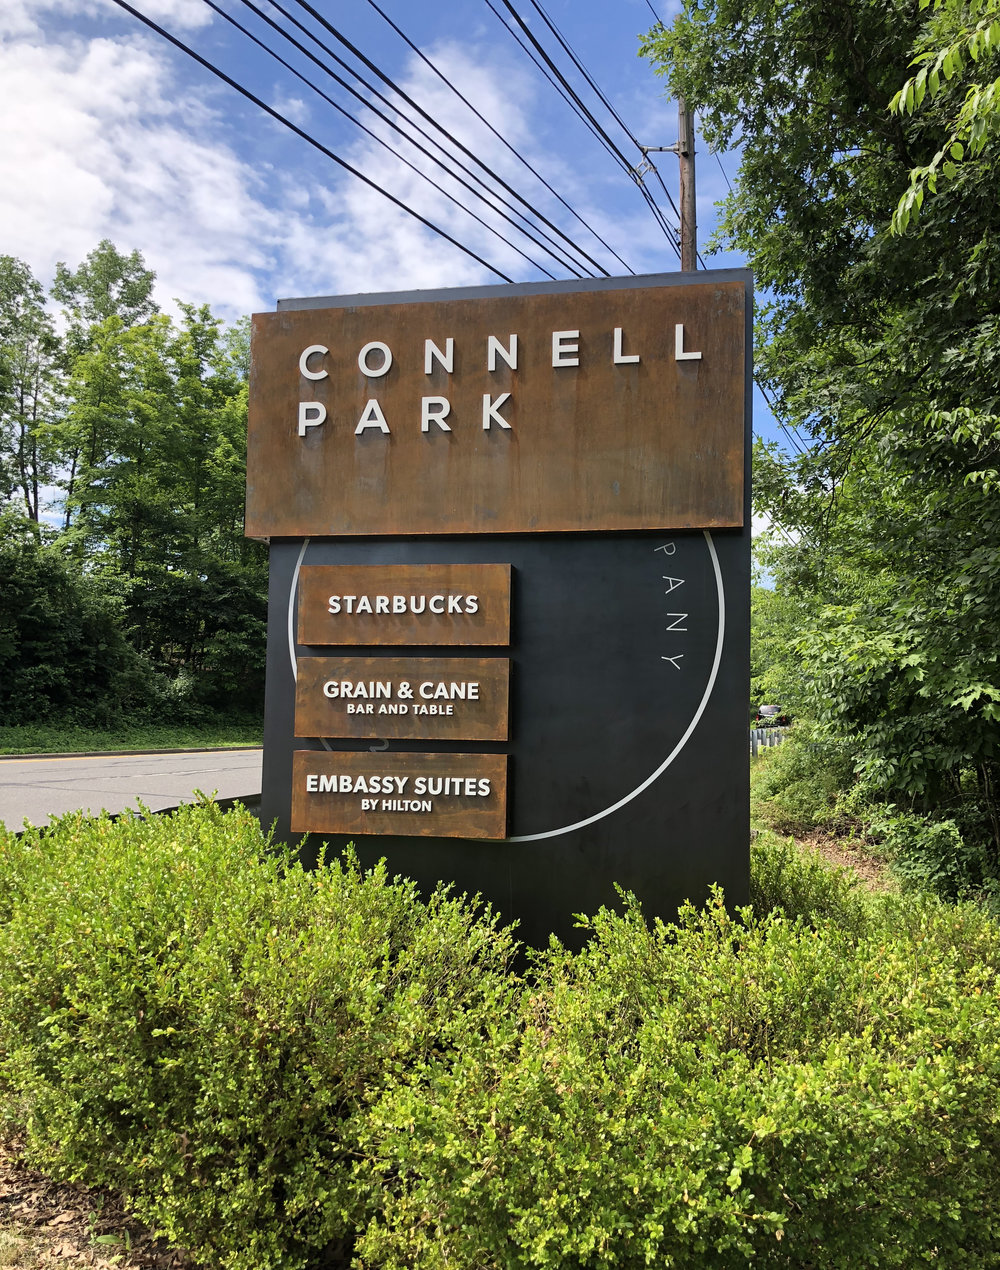 connellpark_resized_03.jpg